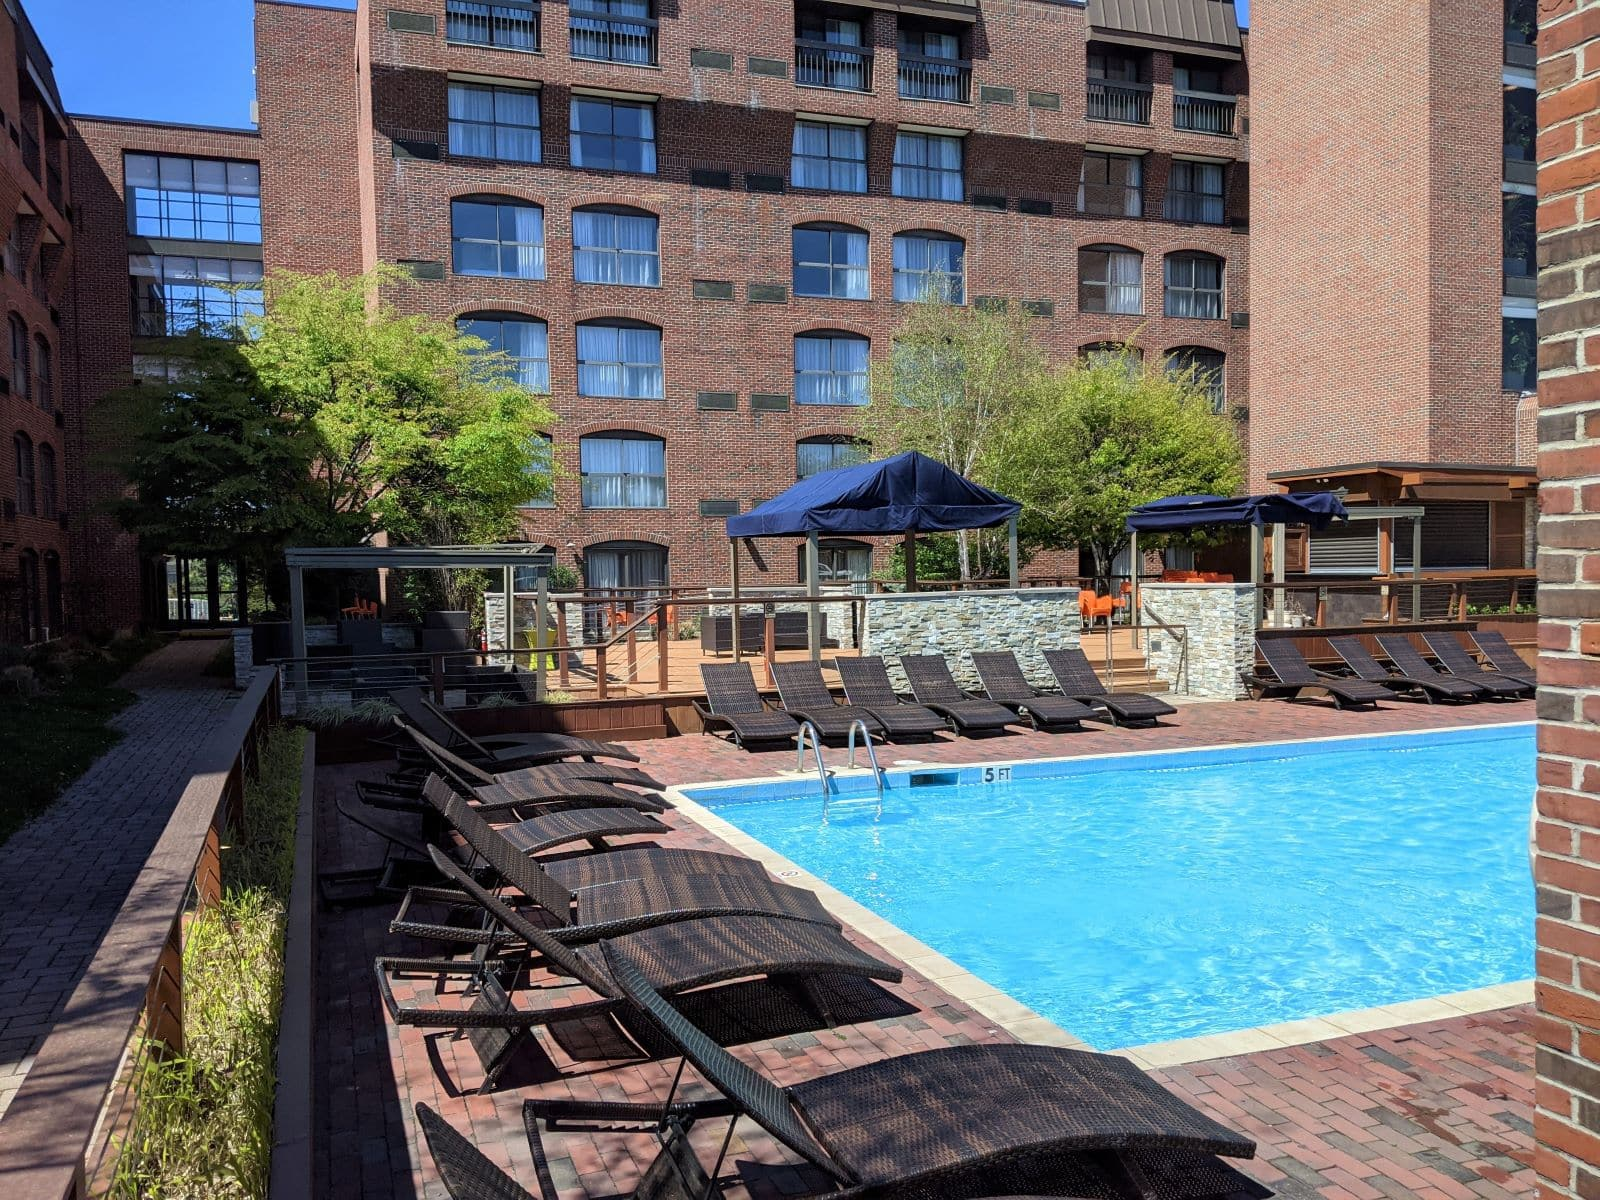 outdoor pool of the Providence Marriott Downtown with lounging chairs